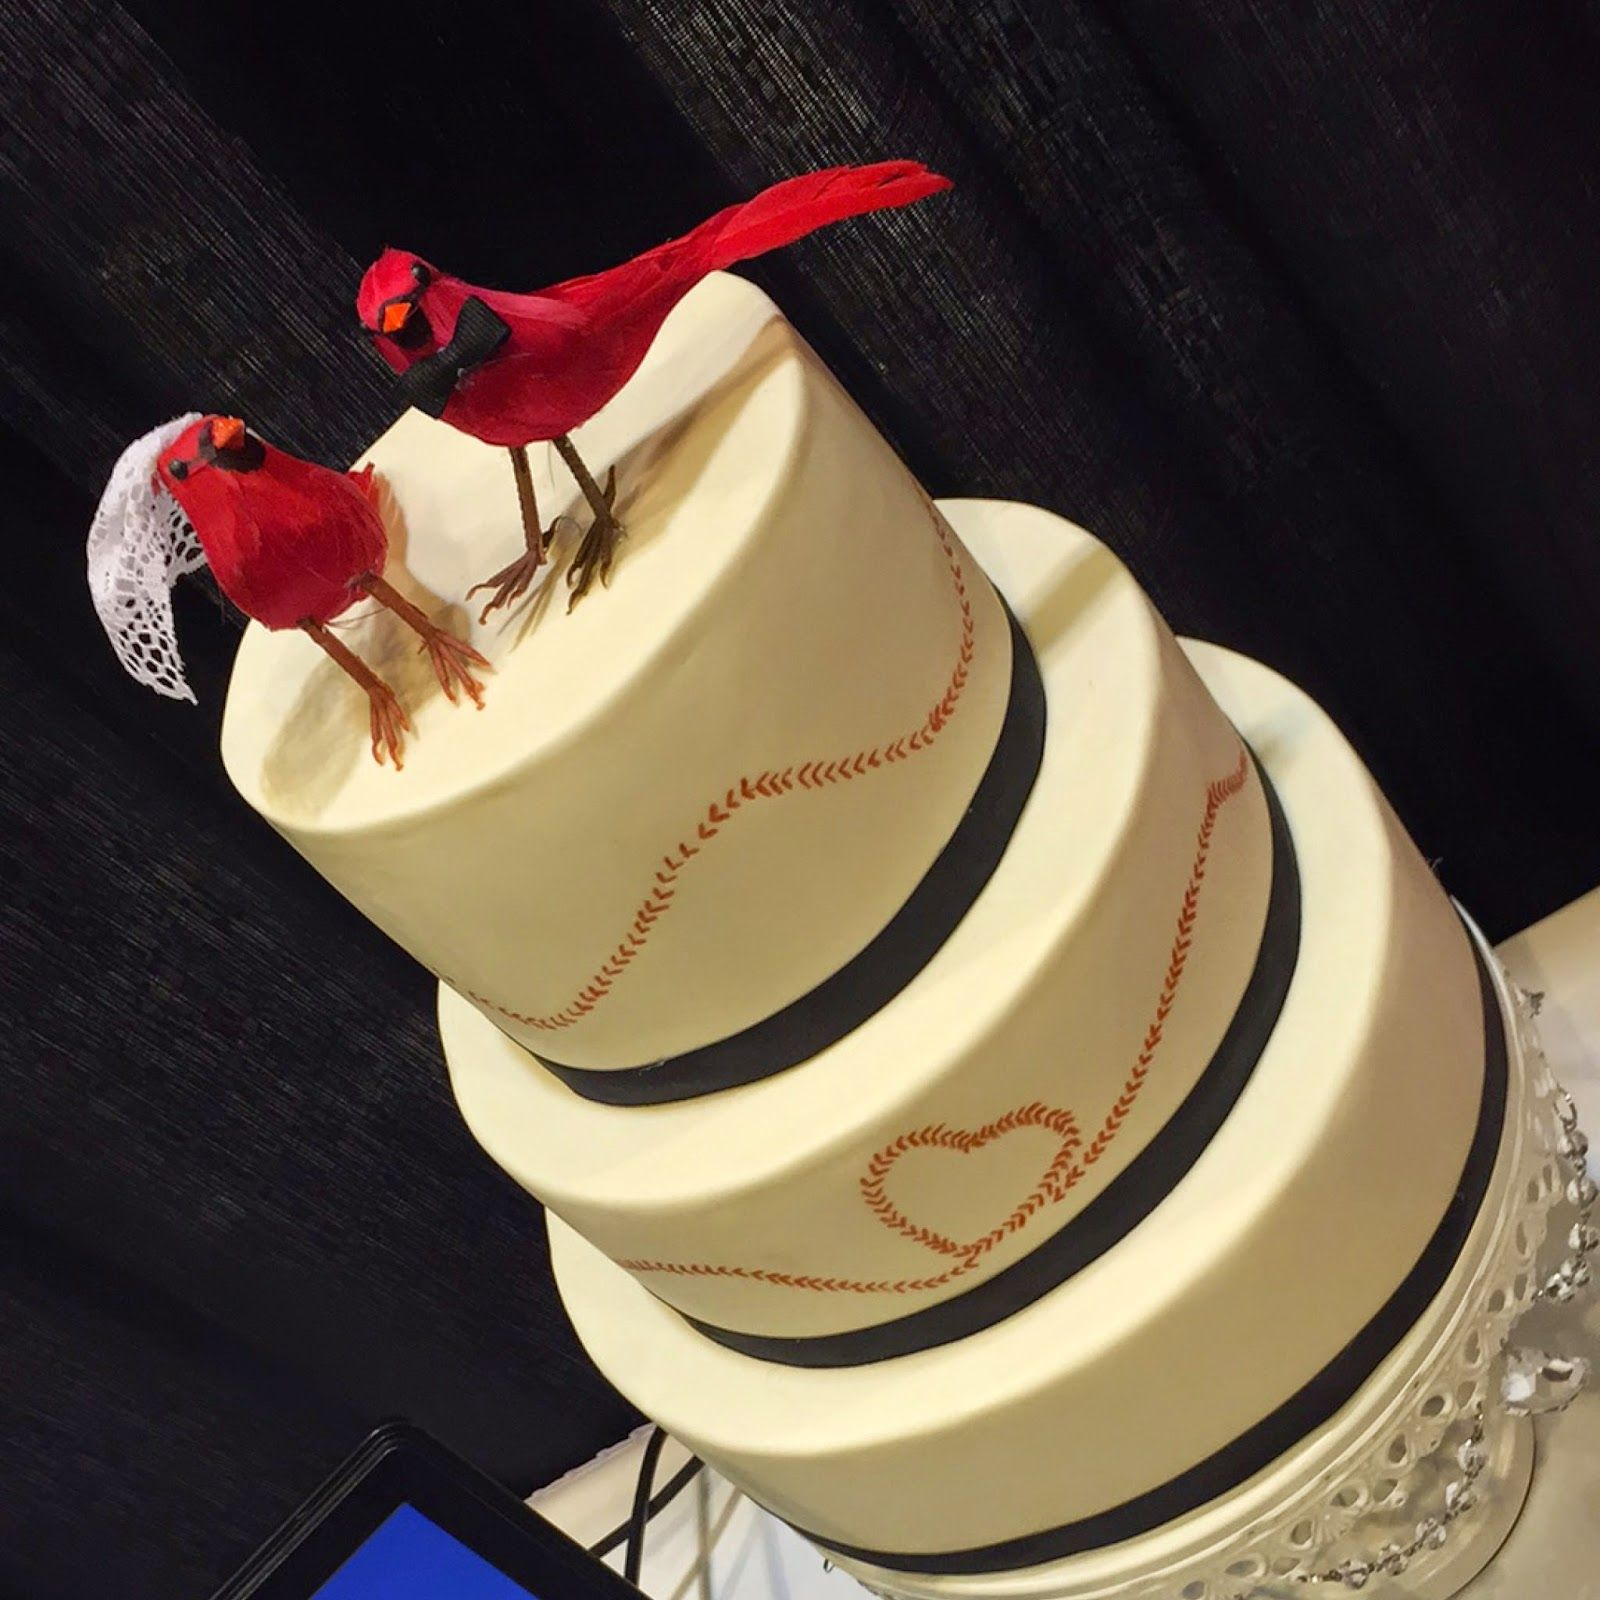 St. Louis Cardinal Themed Wedding Cake By Hock Cakes